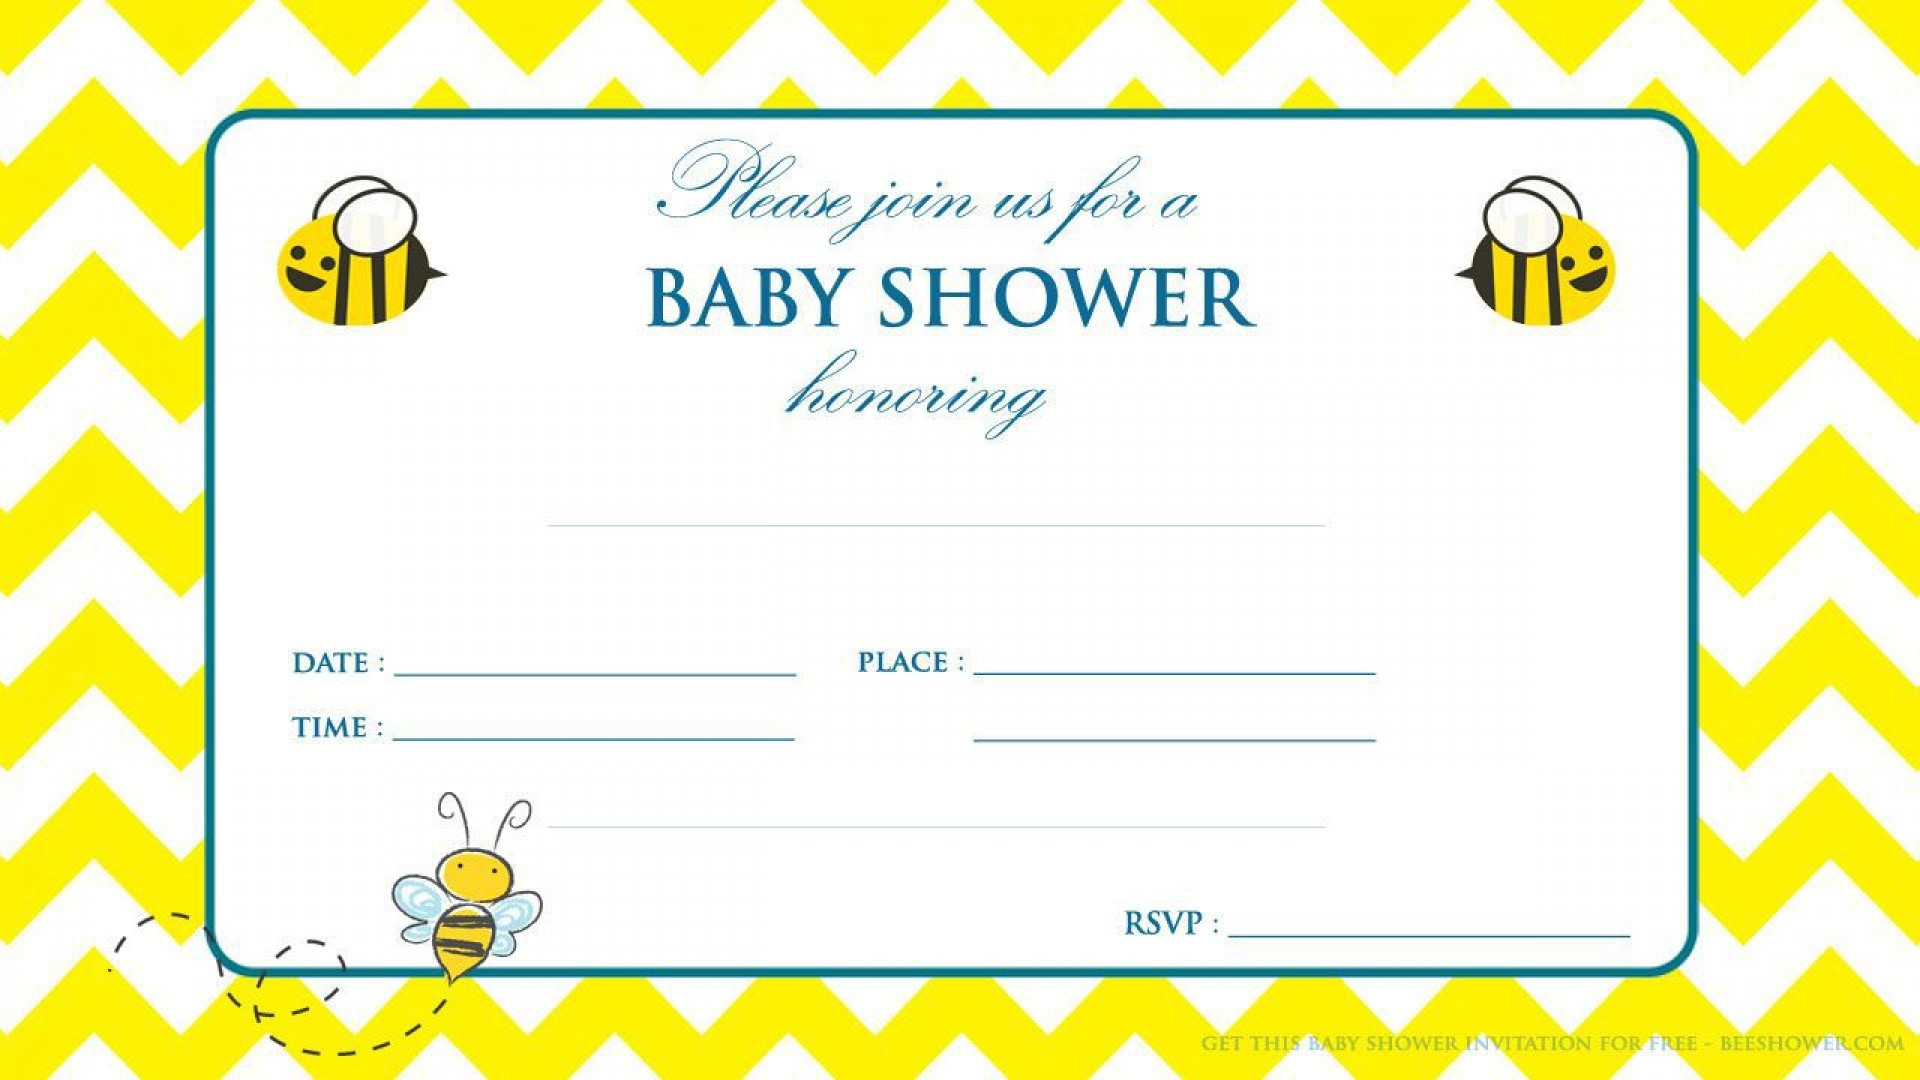 002 Frightening Baby Shower Template Word High Def  Printable Search Free Invitation1920